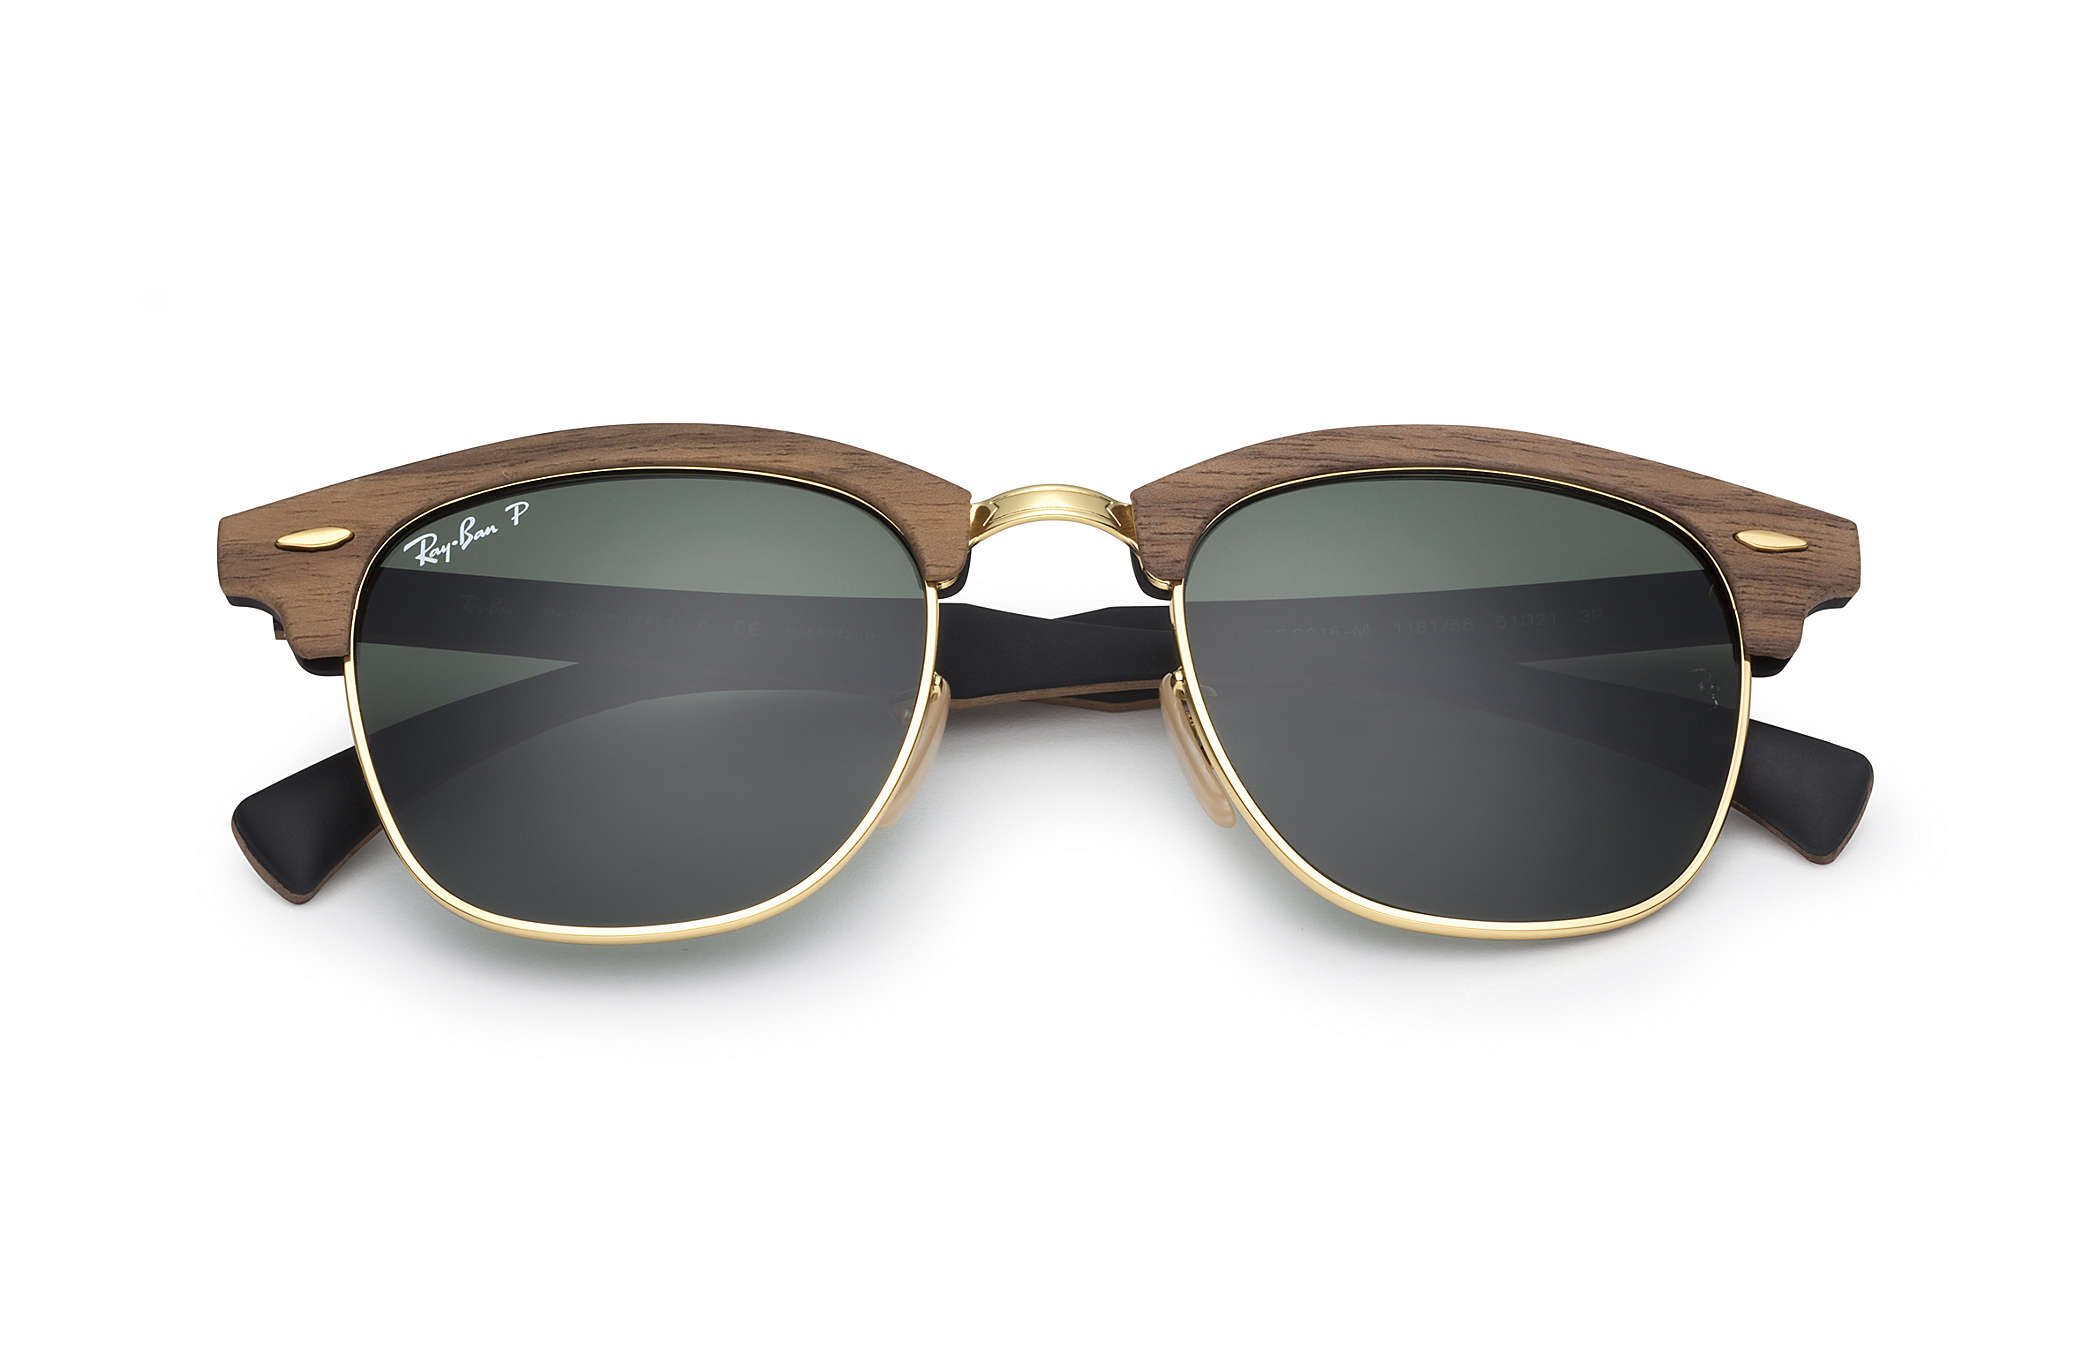 1b57b1f4eb9c Ray-Ban Clubmaster Wood RB3016M Brown - Wood - Green Polarized ...